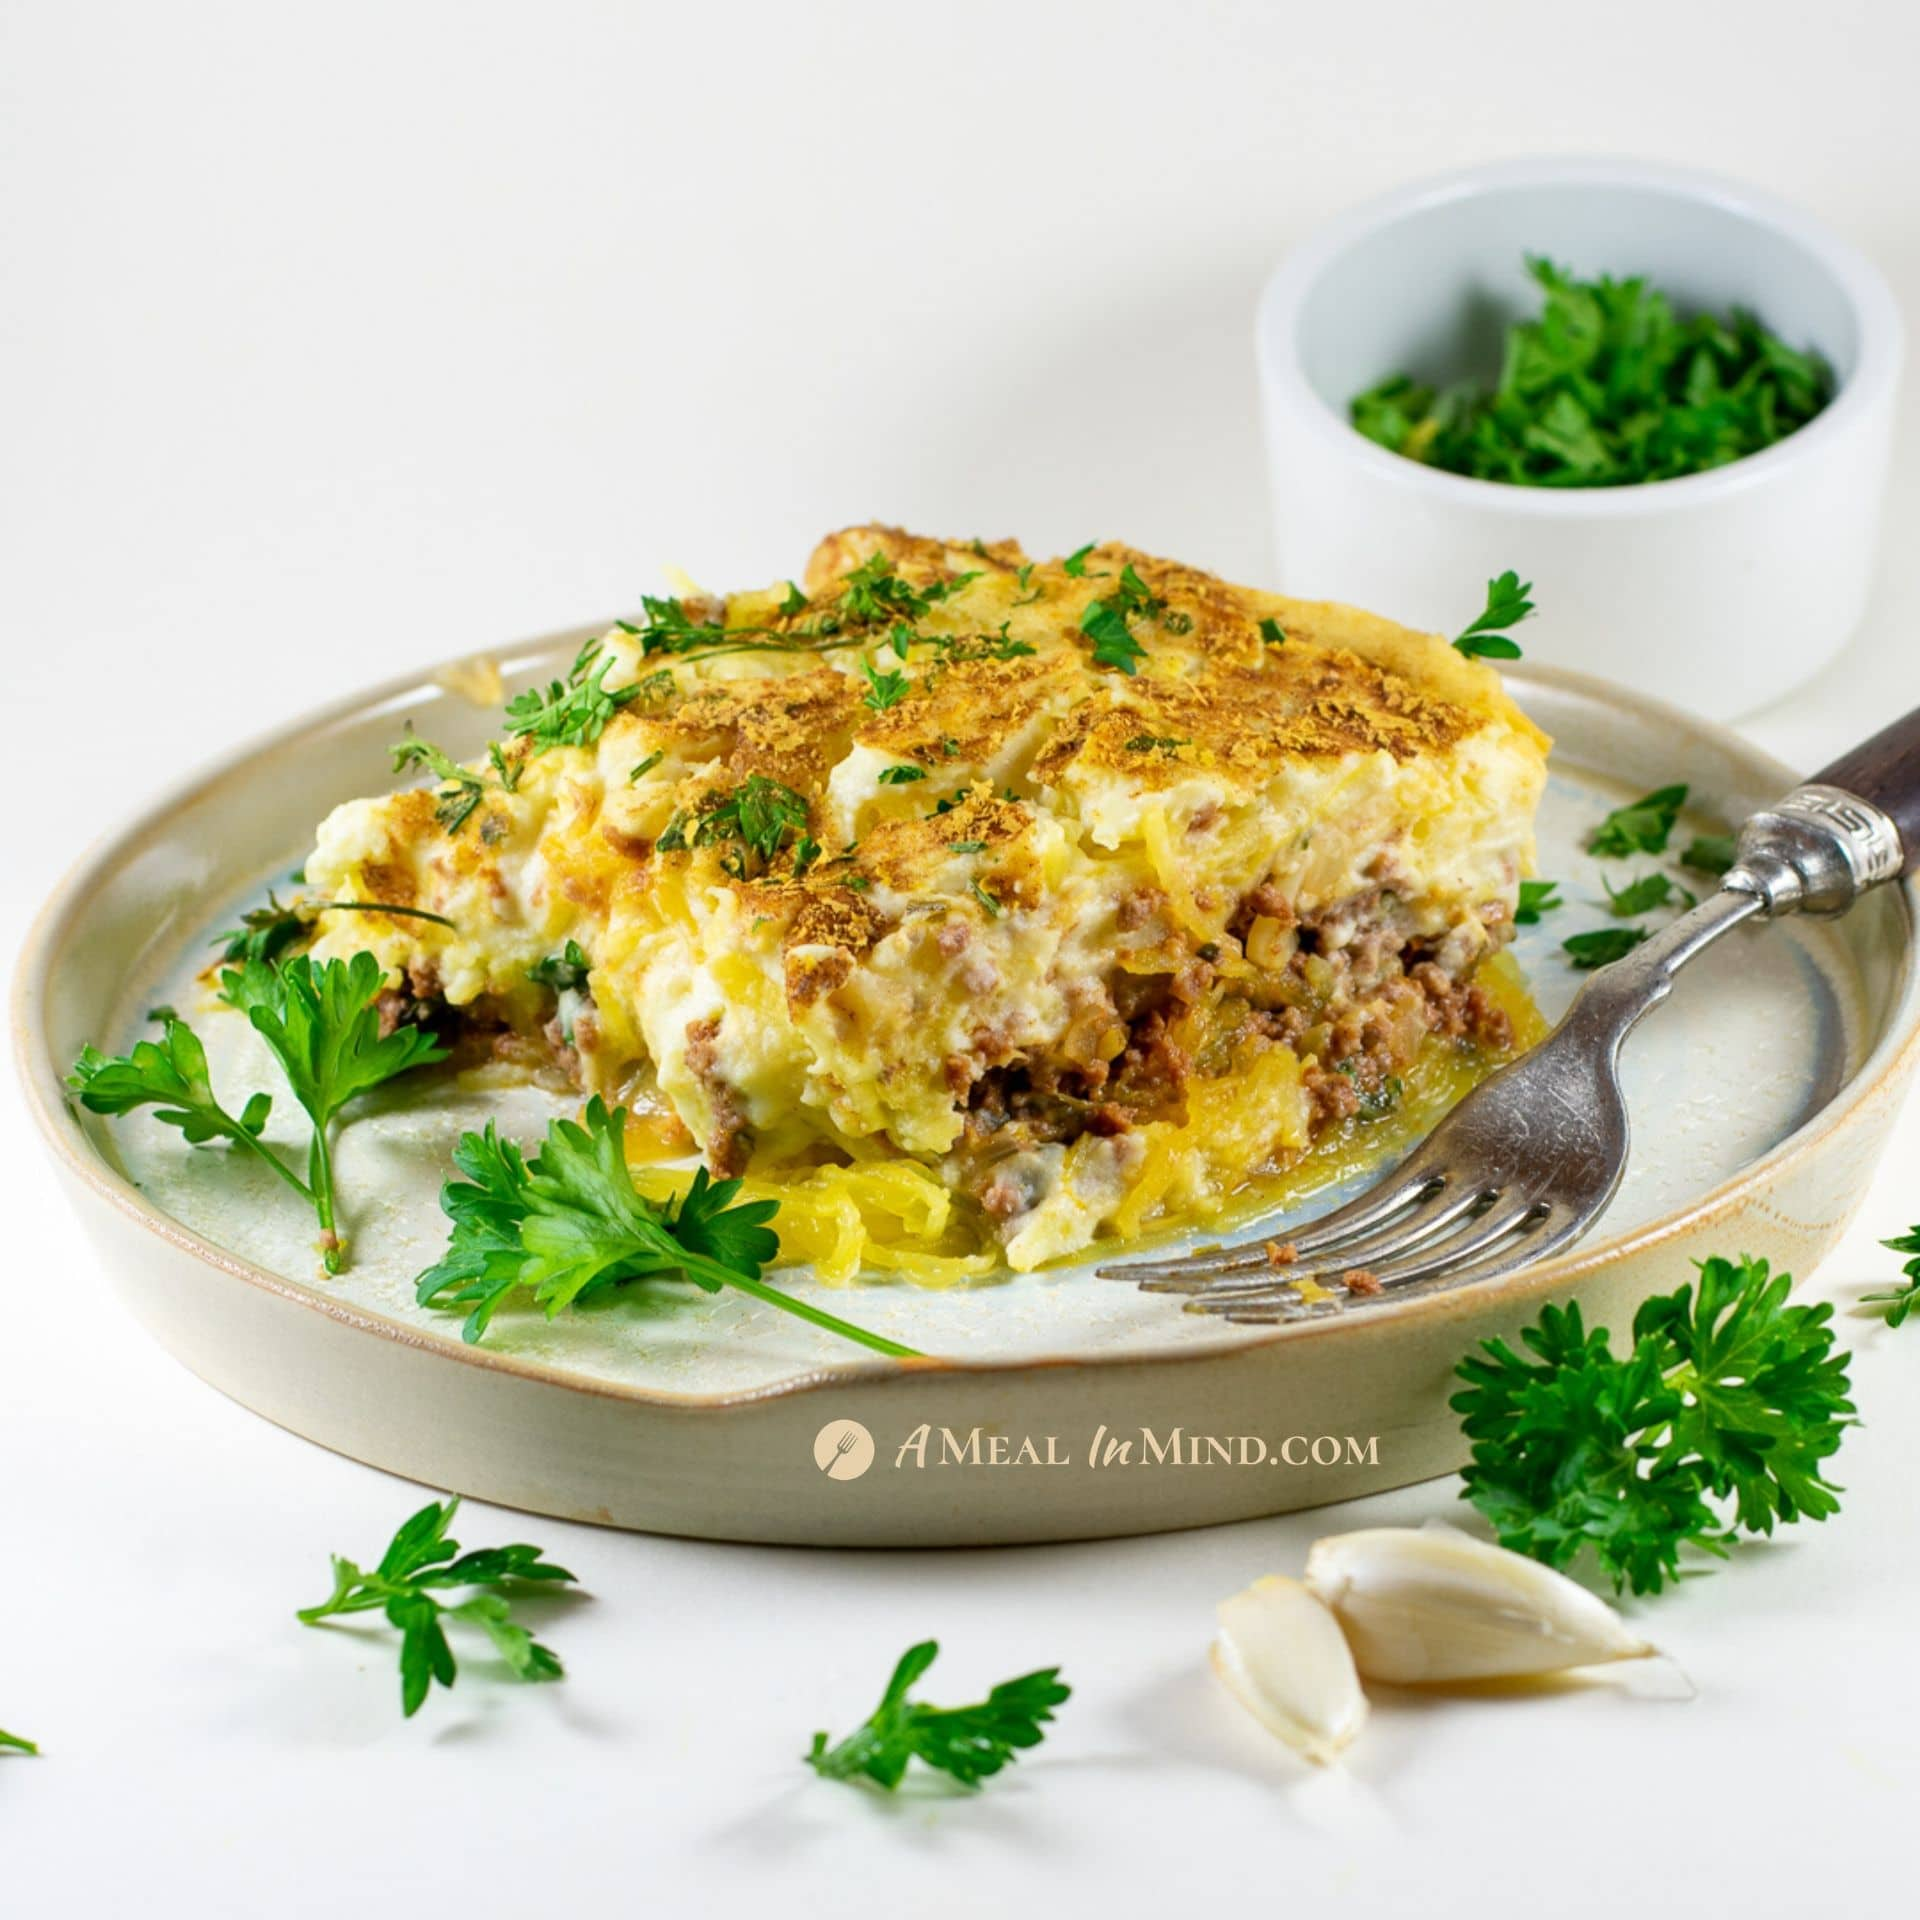 savory gluten-free spaghetti squash Greek pastitsio on white plate